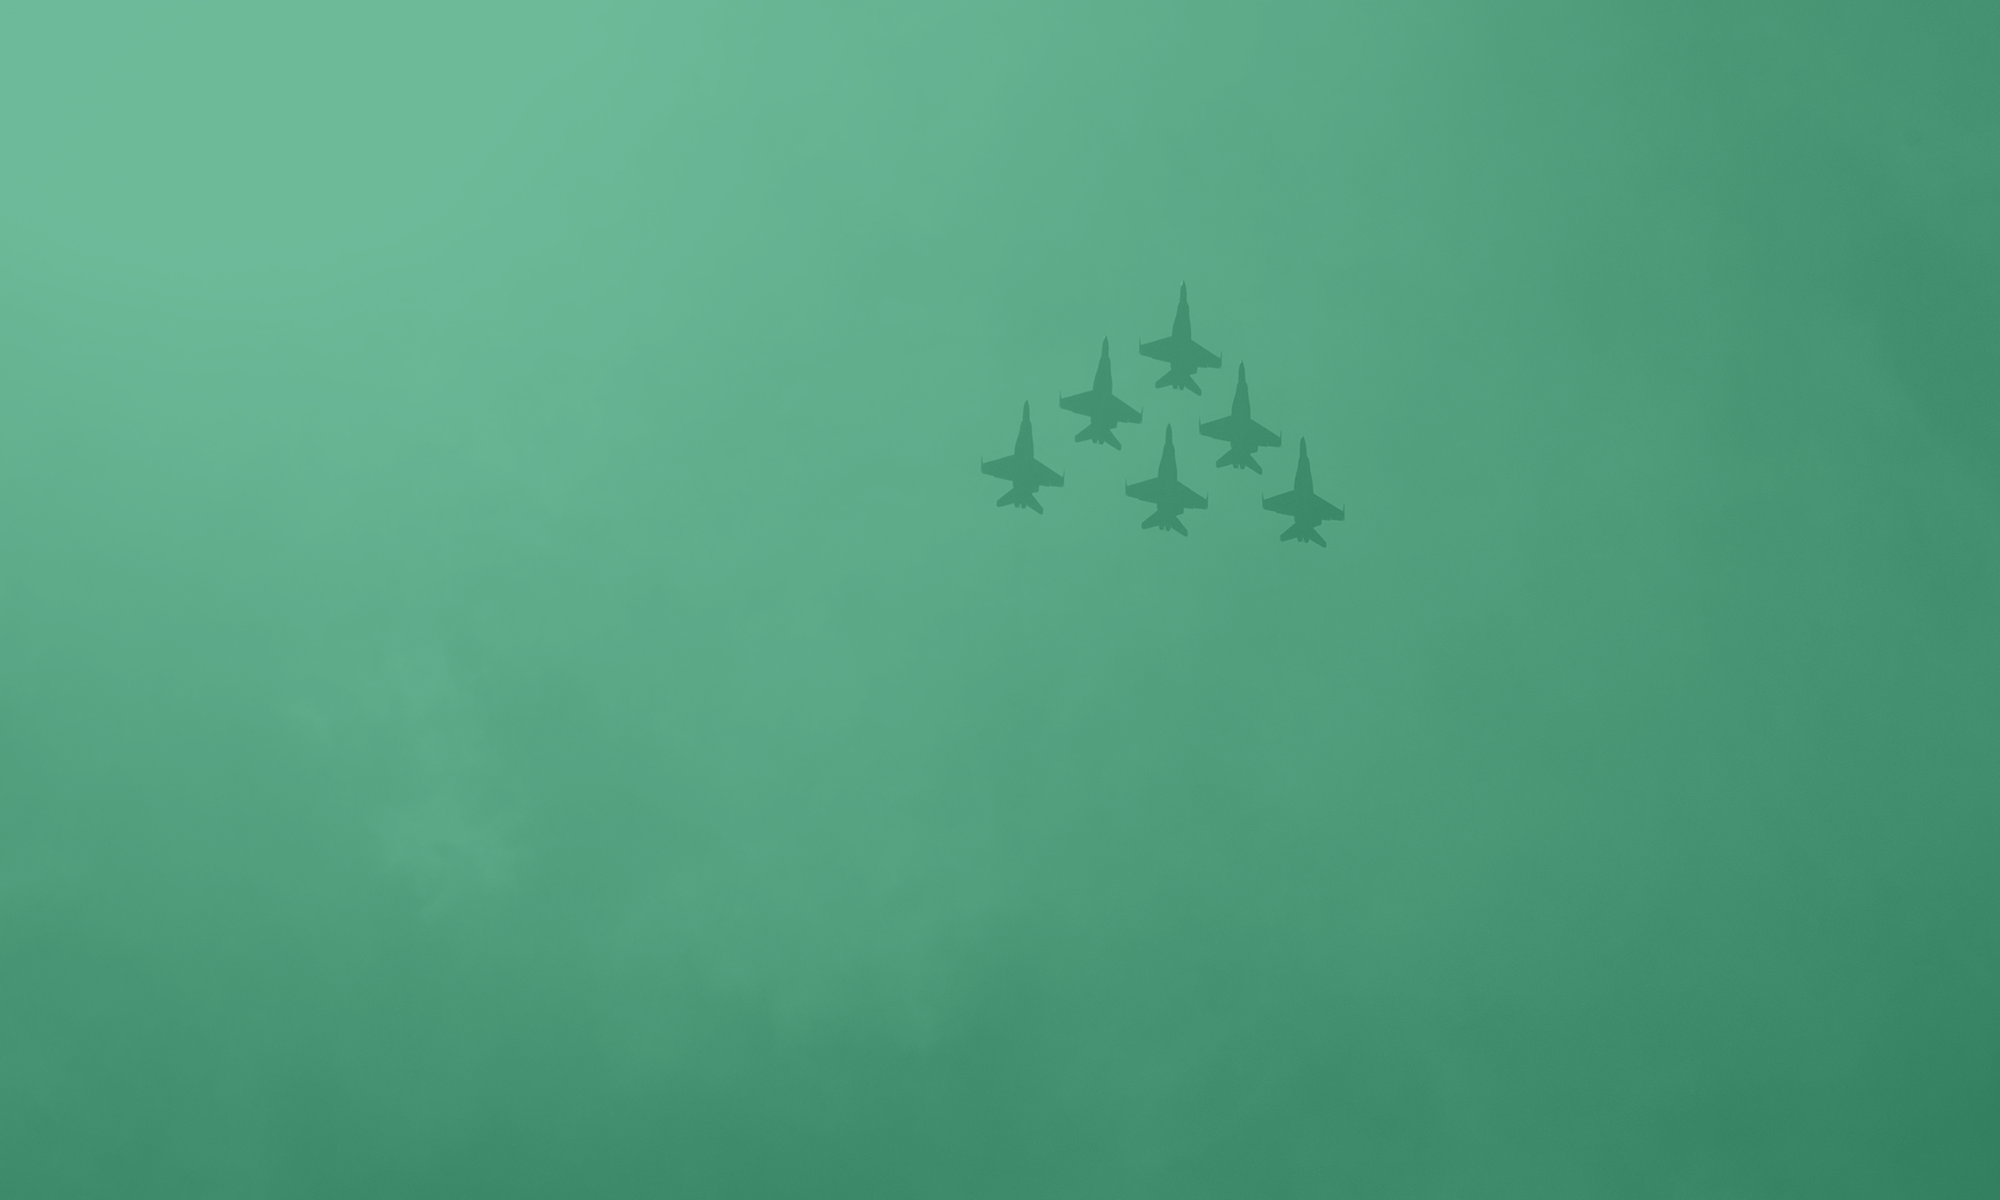 military jets flying in formation